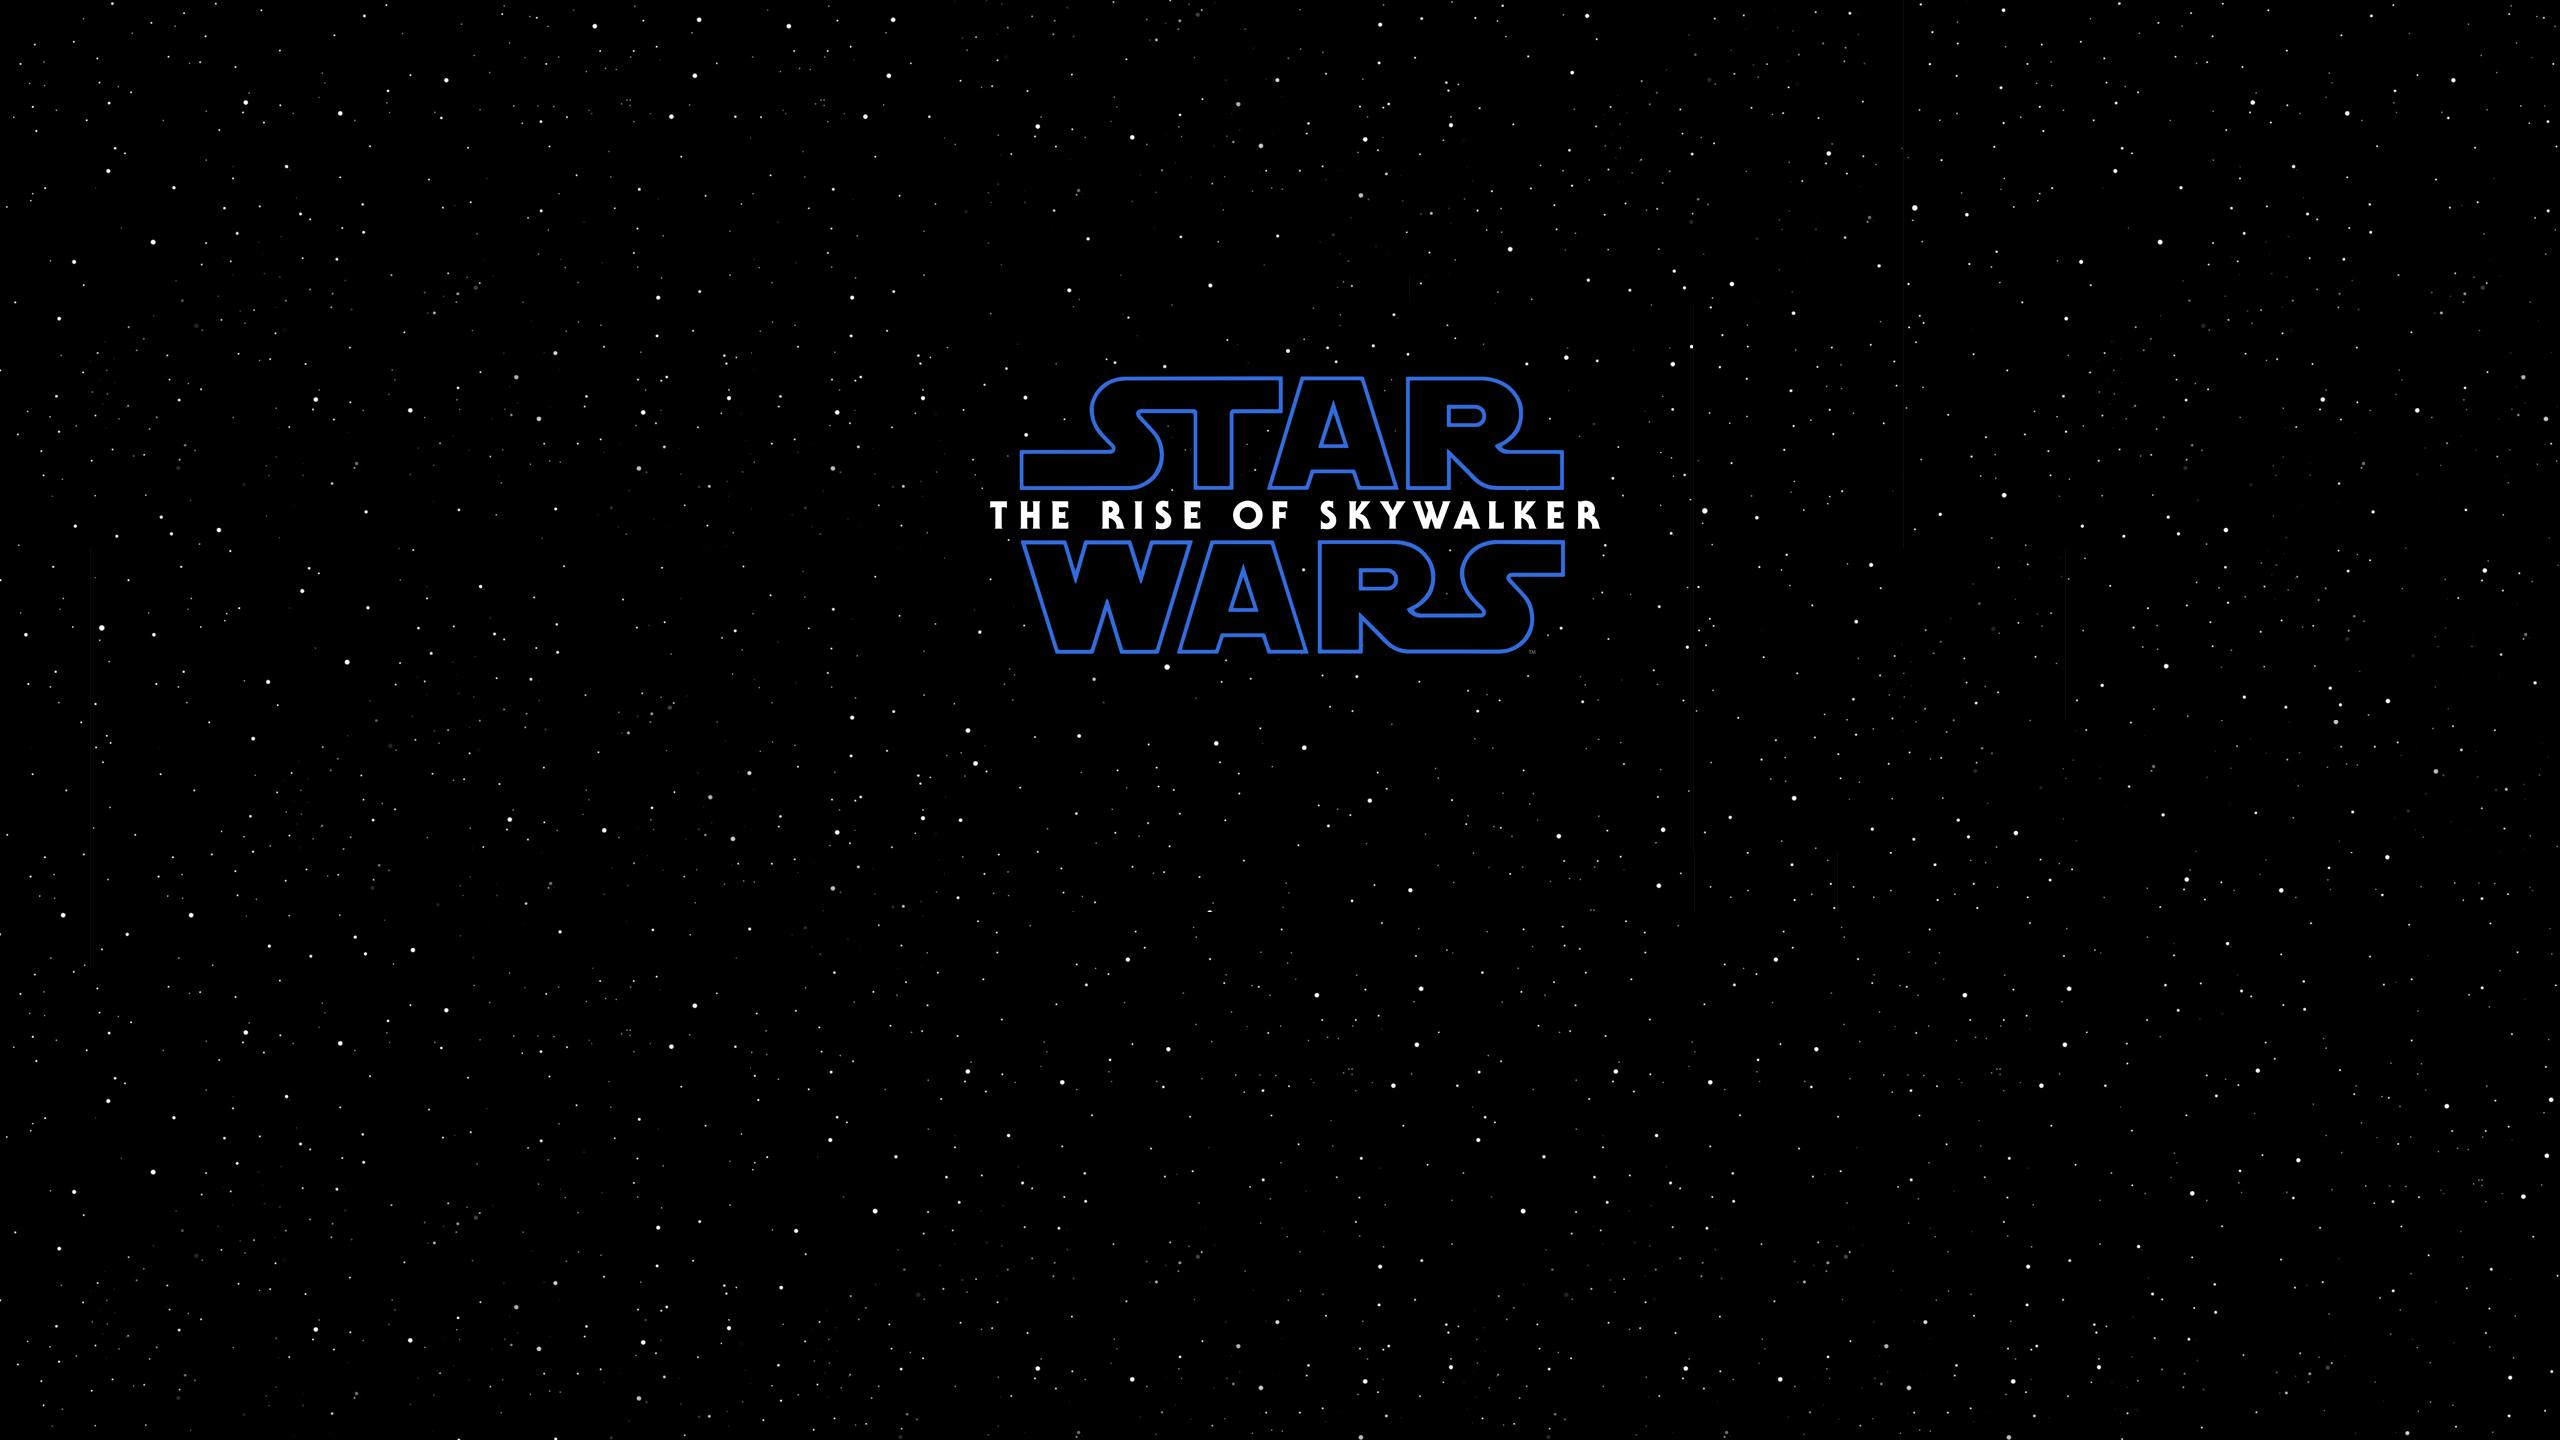 Star Wars The Rise Of Skywalker Poster Wallpapers Wallpaper Cave